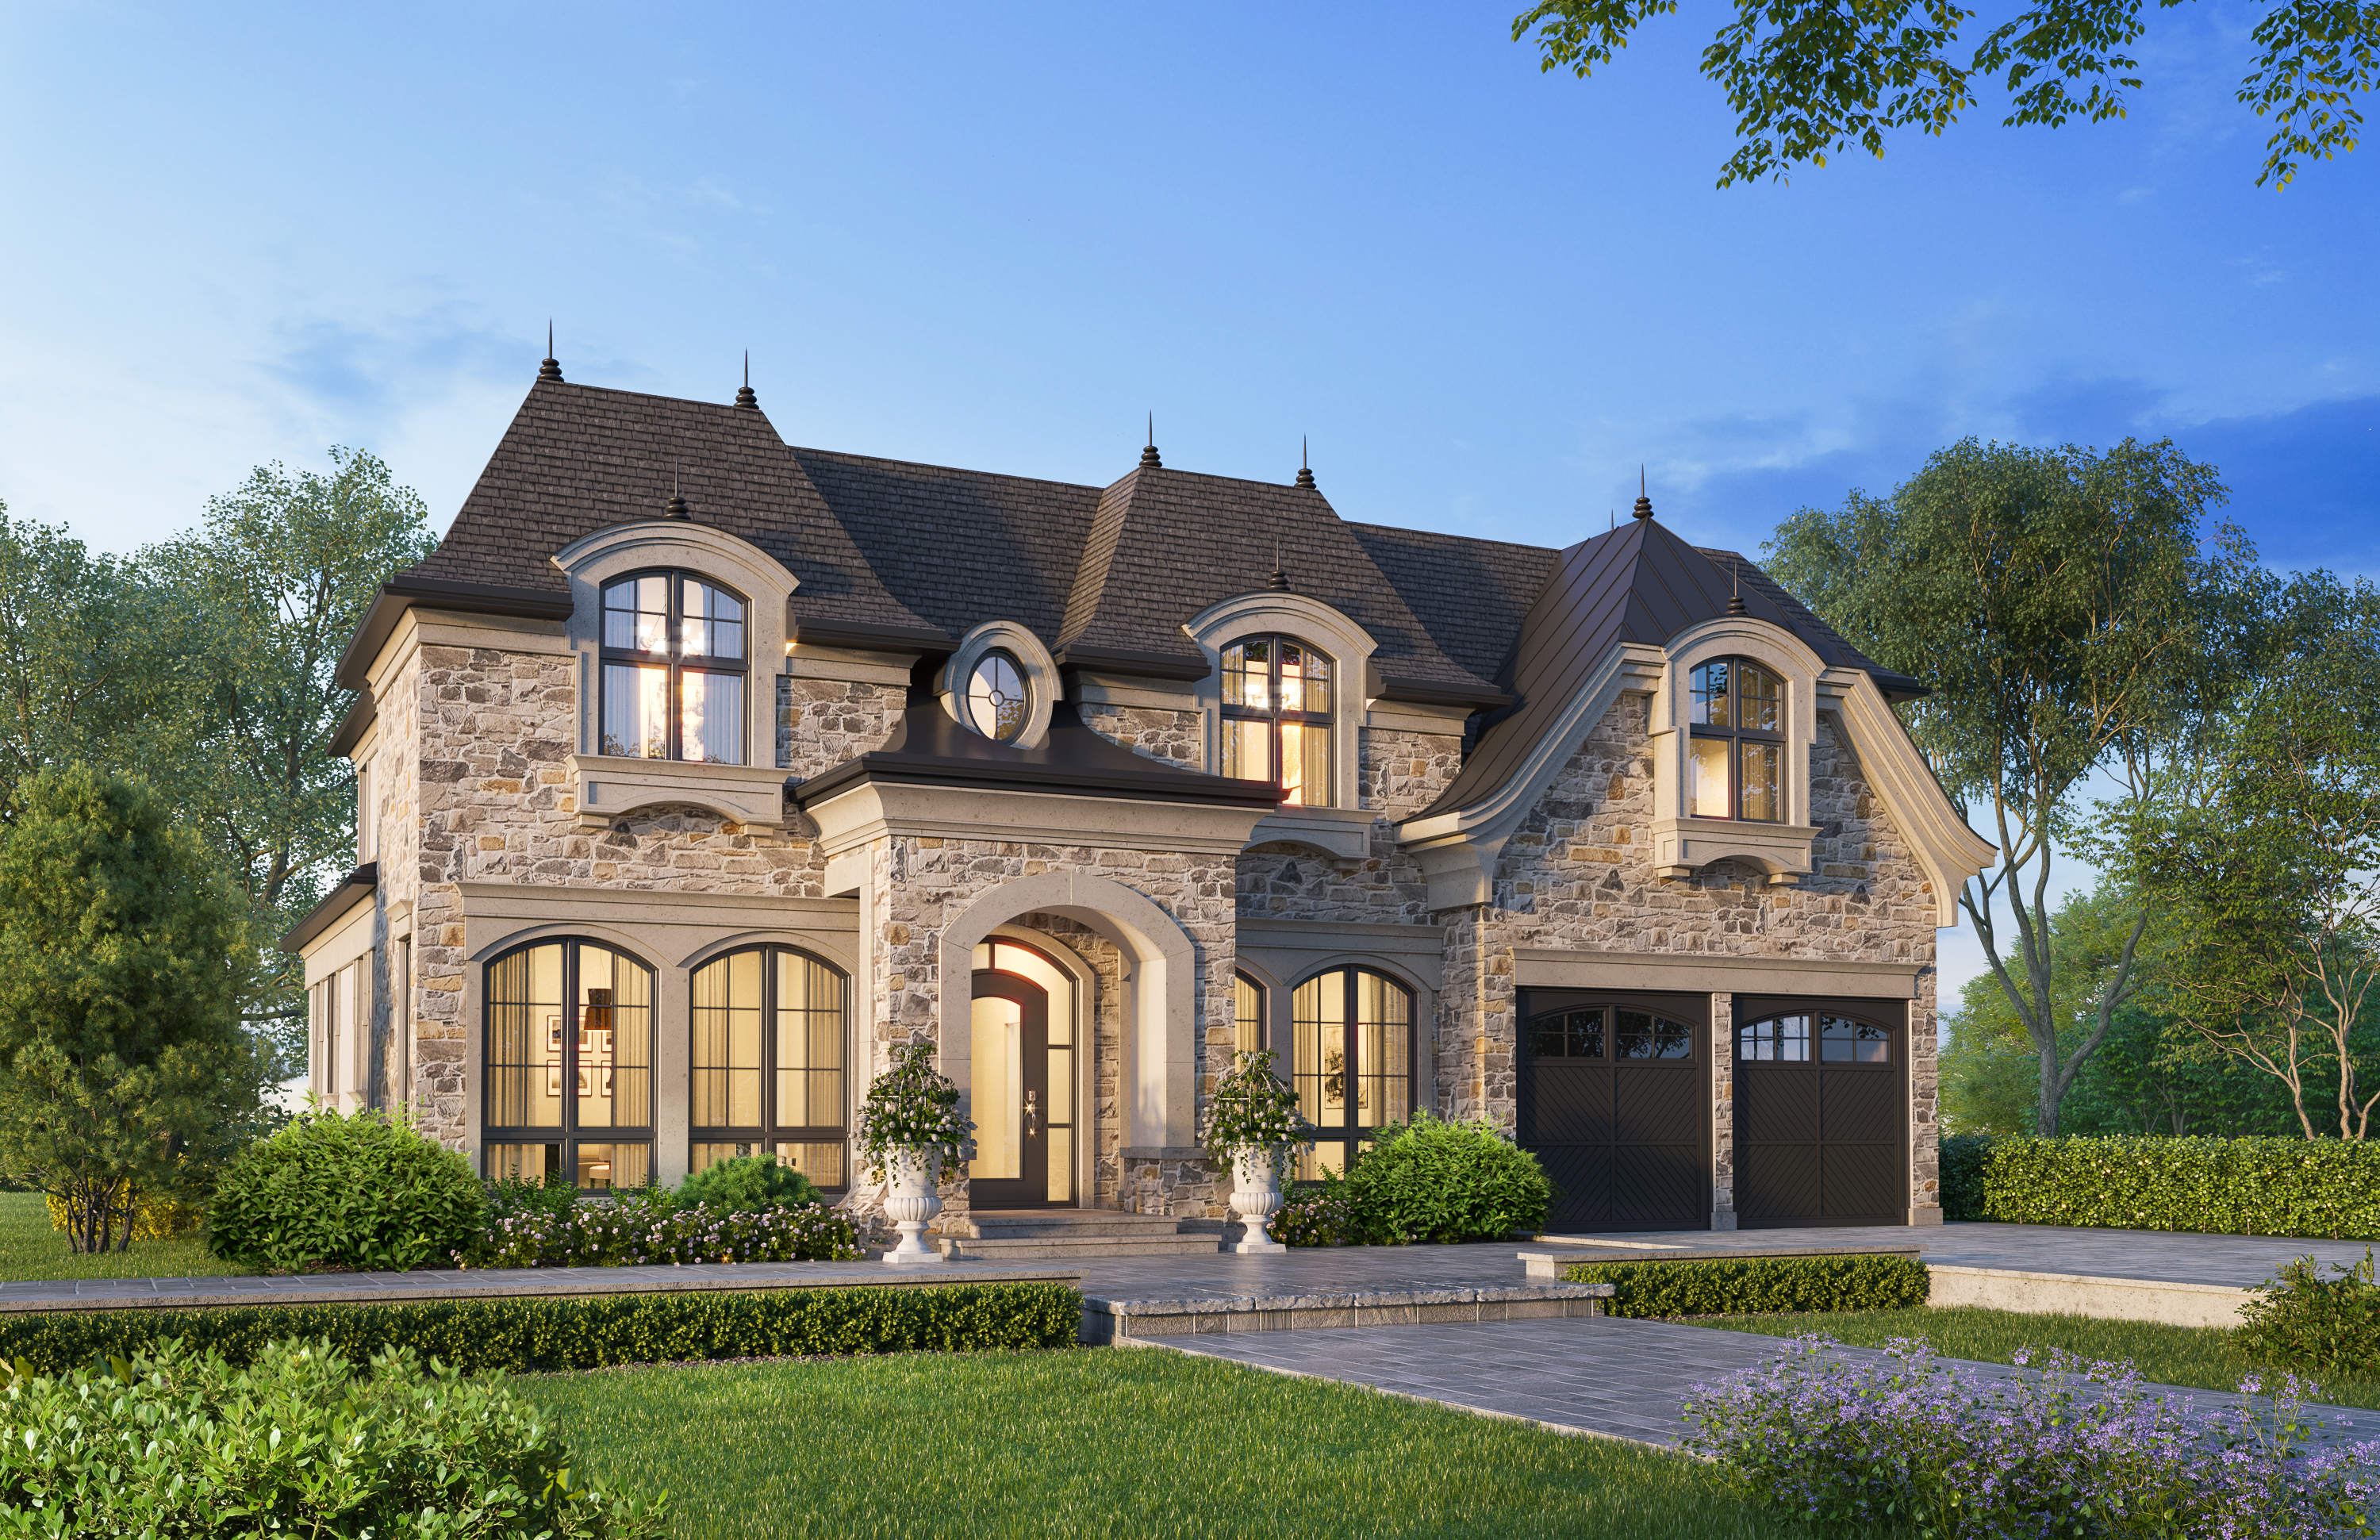 French provincial Custom Home